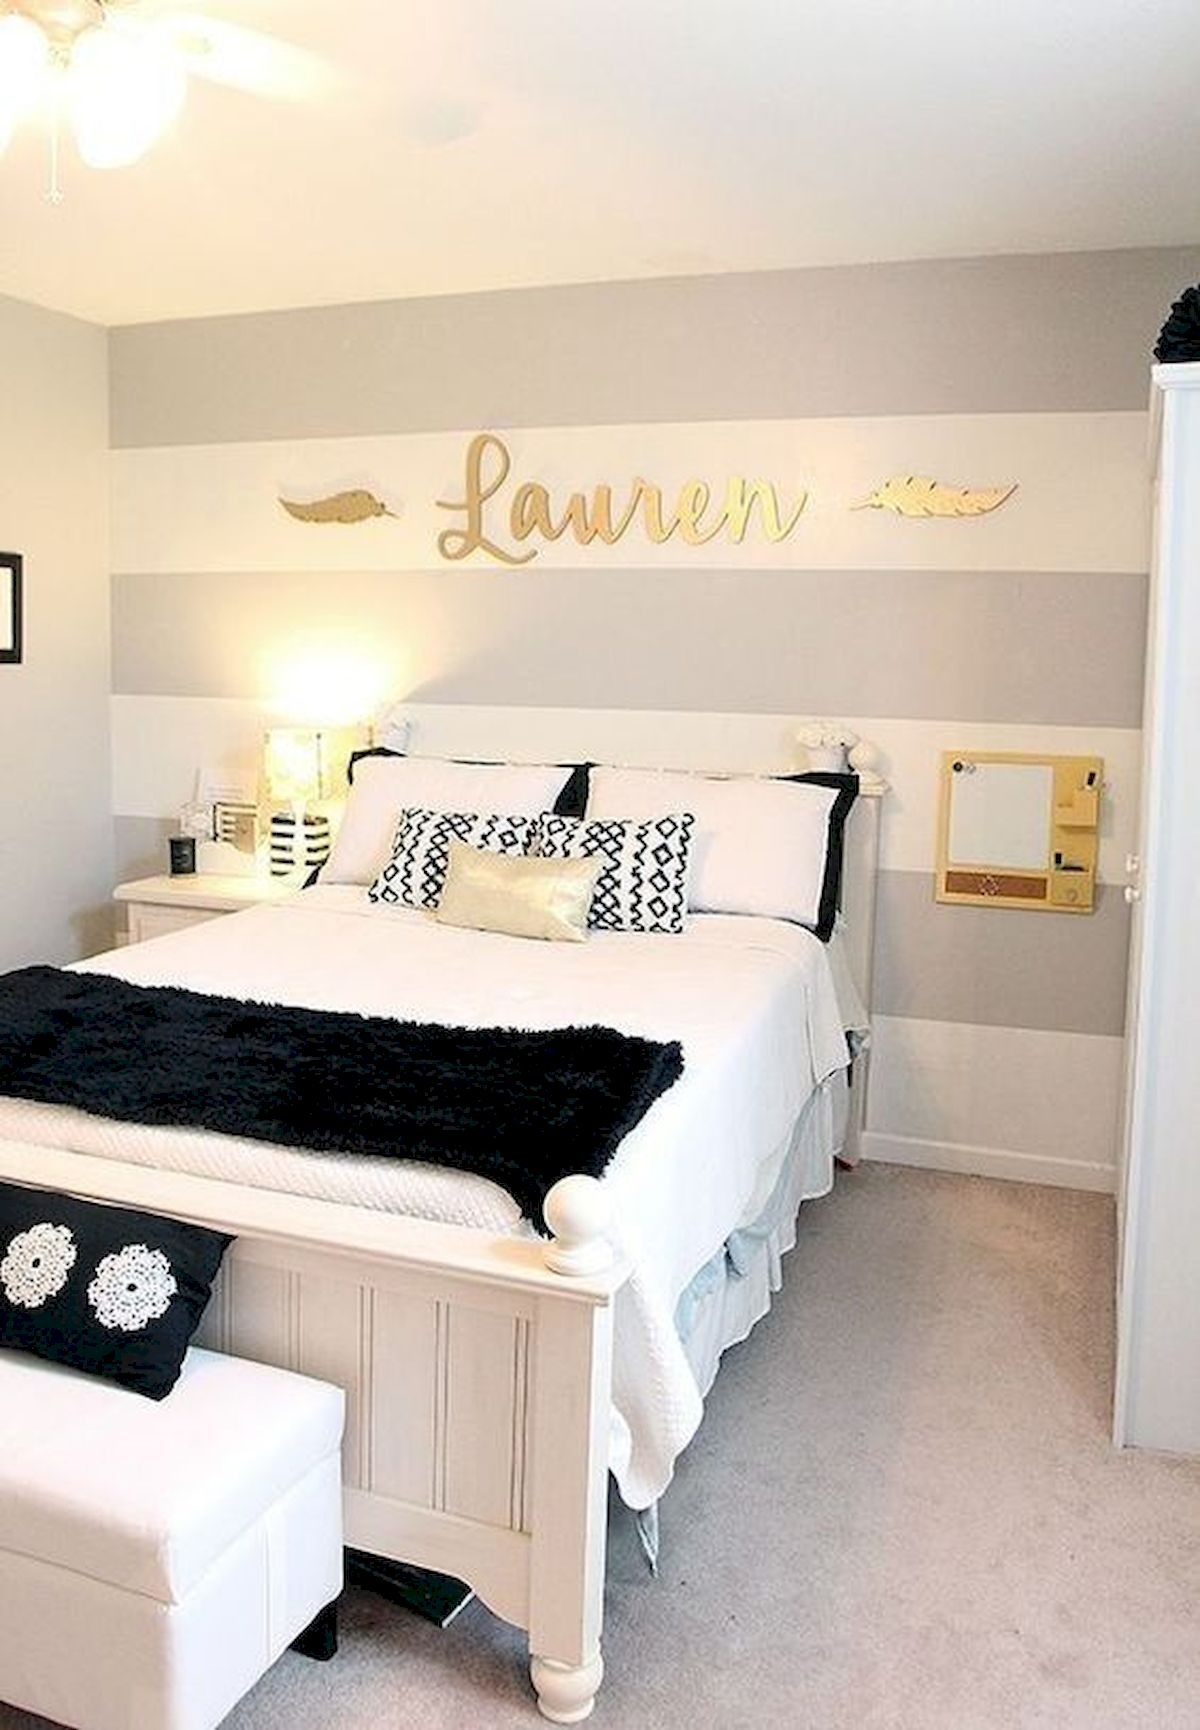 60 Cute DIY Bedroom Design and Decor Ideas for Kids (29)